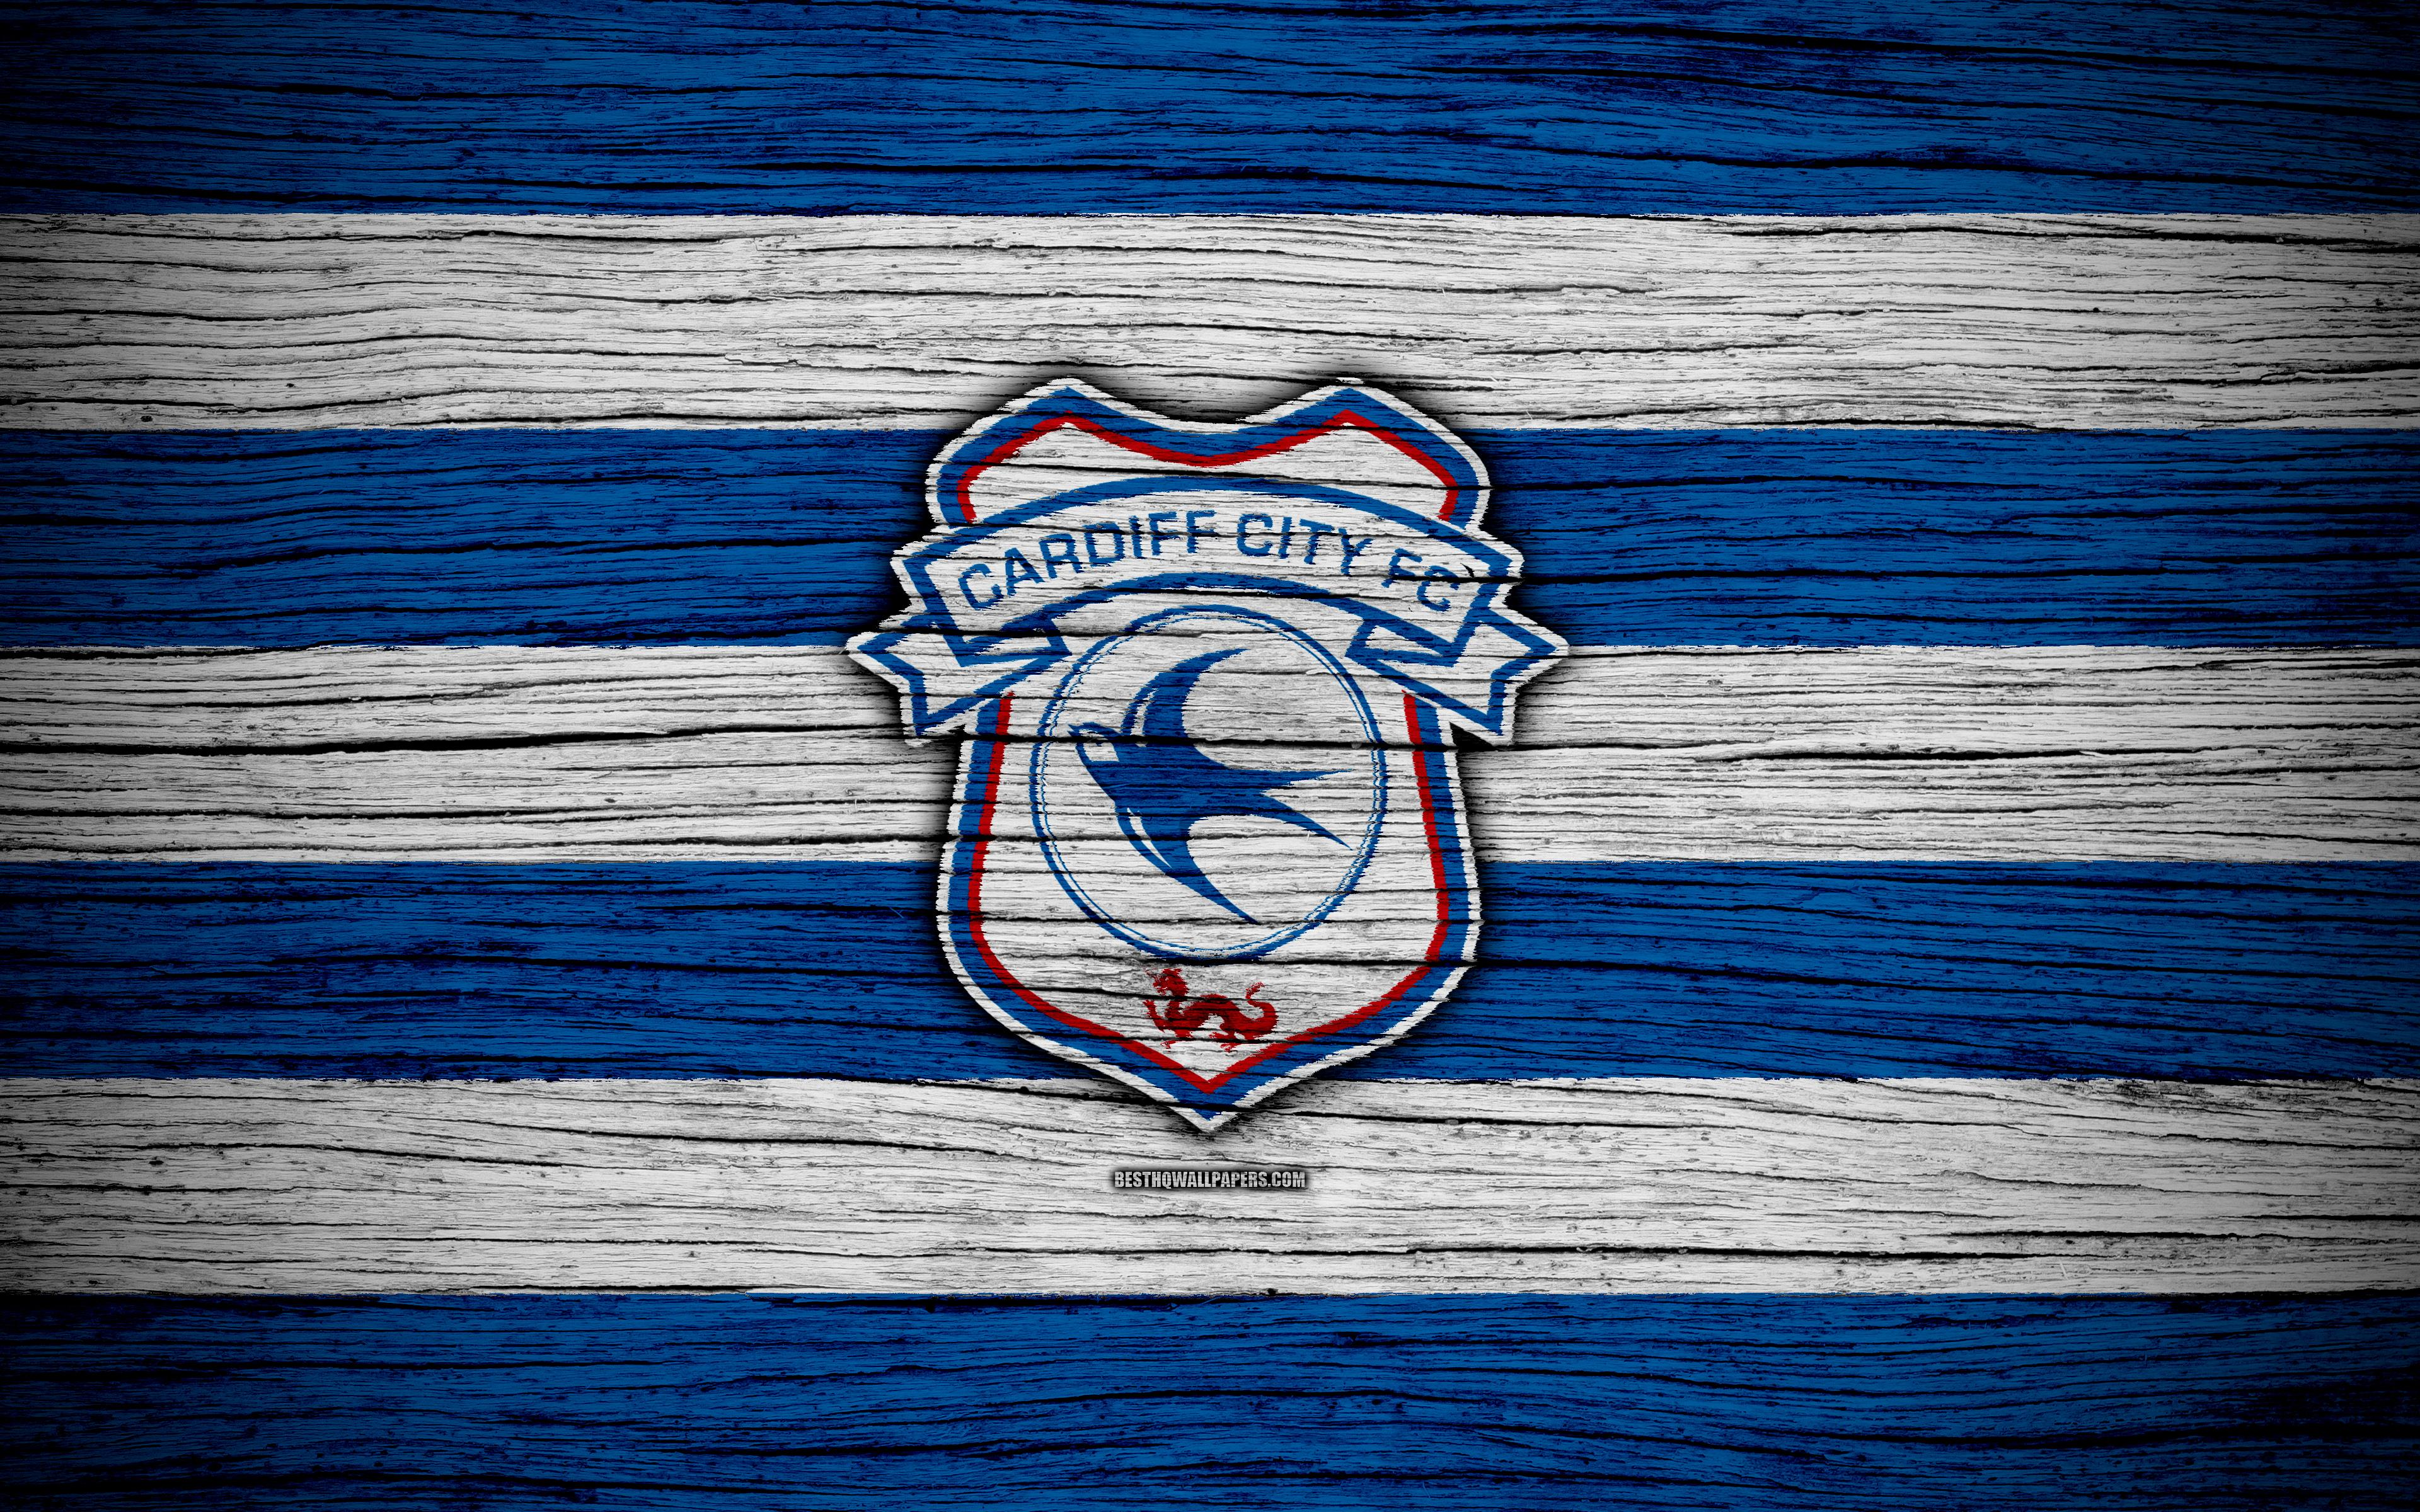 Download wallpapers Cardiff City FC, 4k, EFL Championship, soccer ...